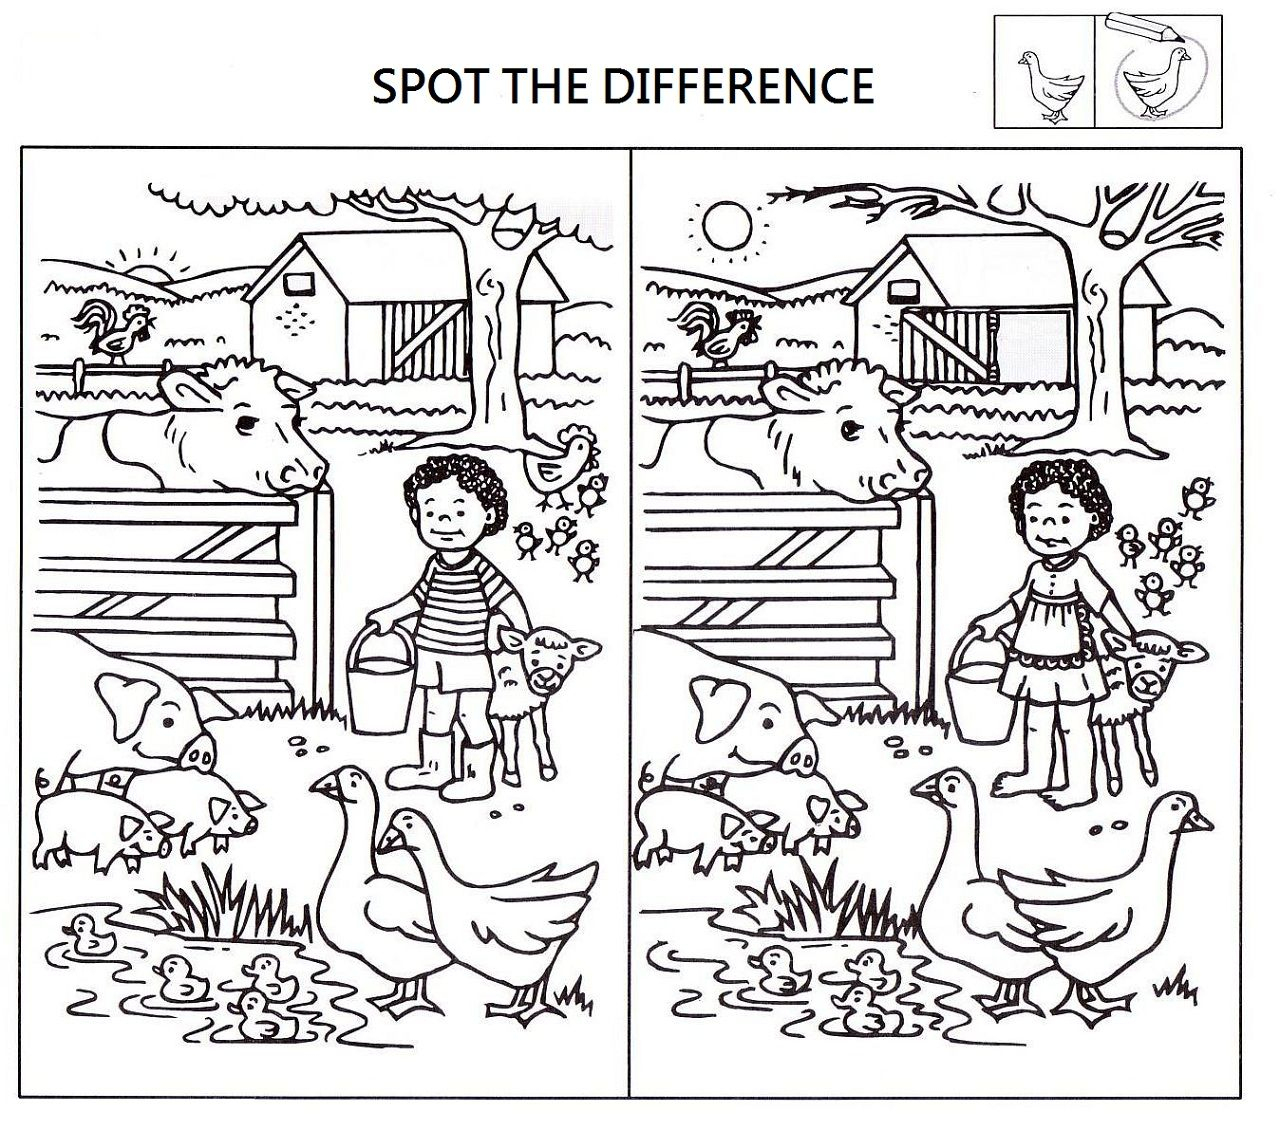 Spot The Difference Worksheets For Kids | Kids Worksheets Printable - Free Printable Spot The Difference Games For Adults